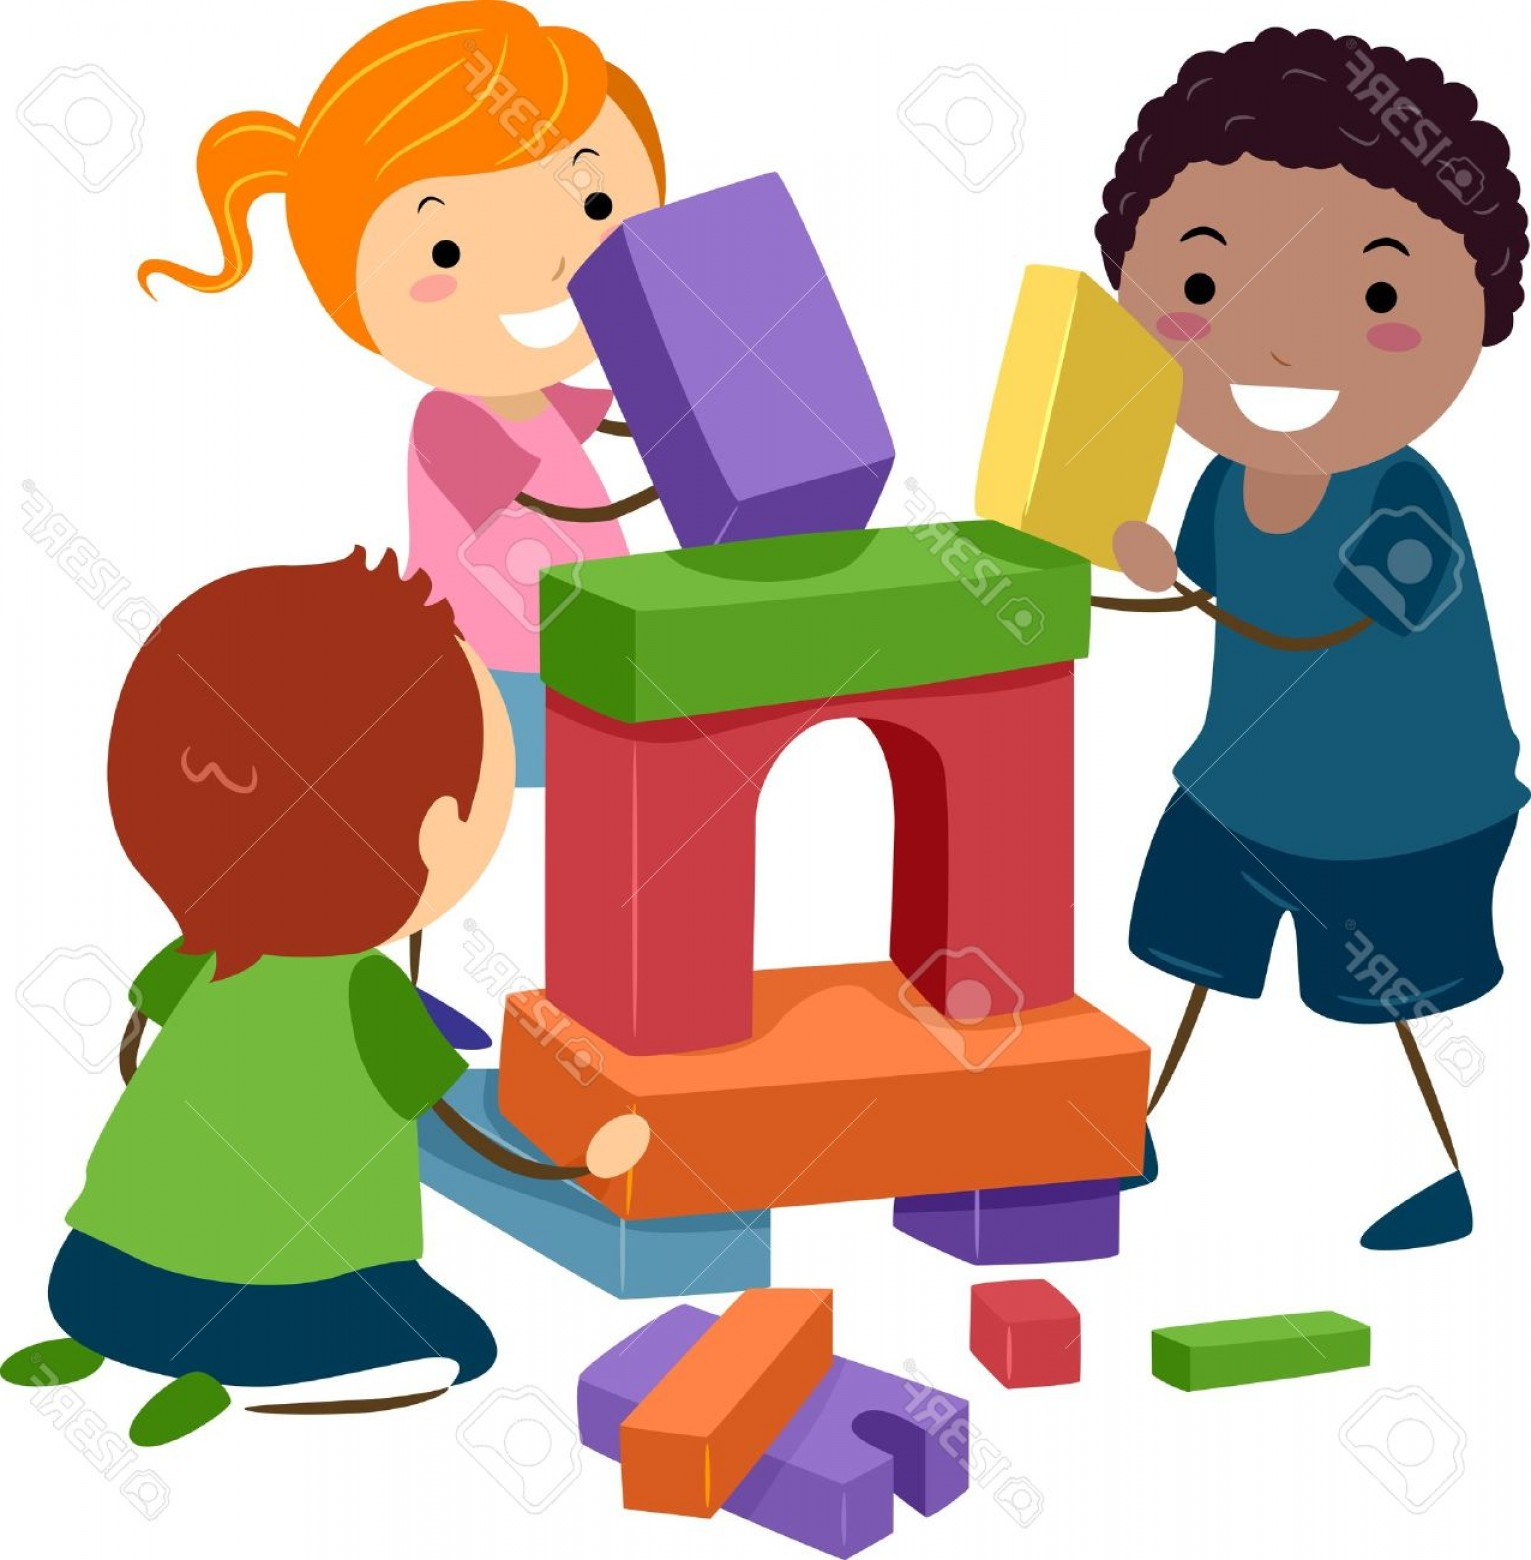 Vector Block Play: Photoillustration Of Stick Kids Playing With Building Blocks